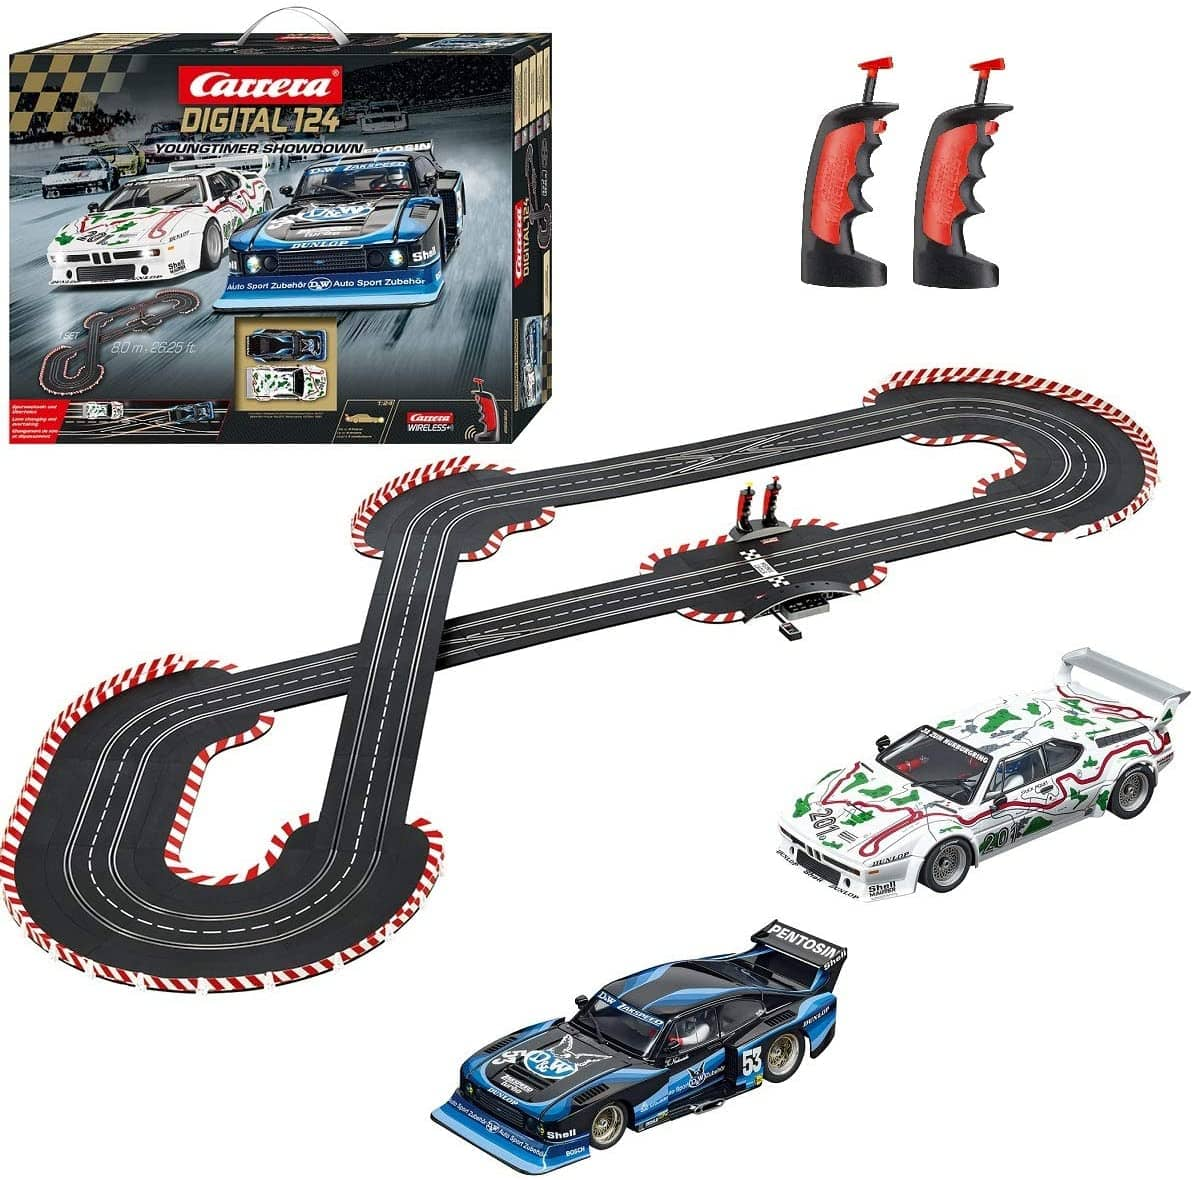 Carrera Digital Race Stars Slot Car Racing System Set-Kidding Around NYC